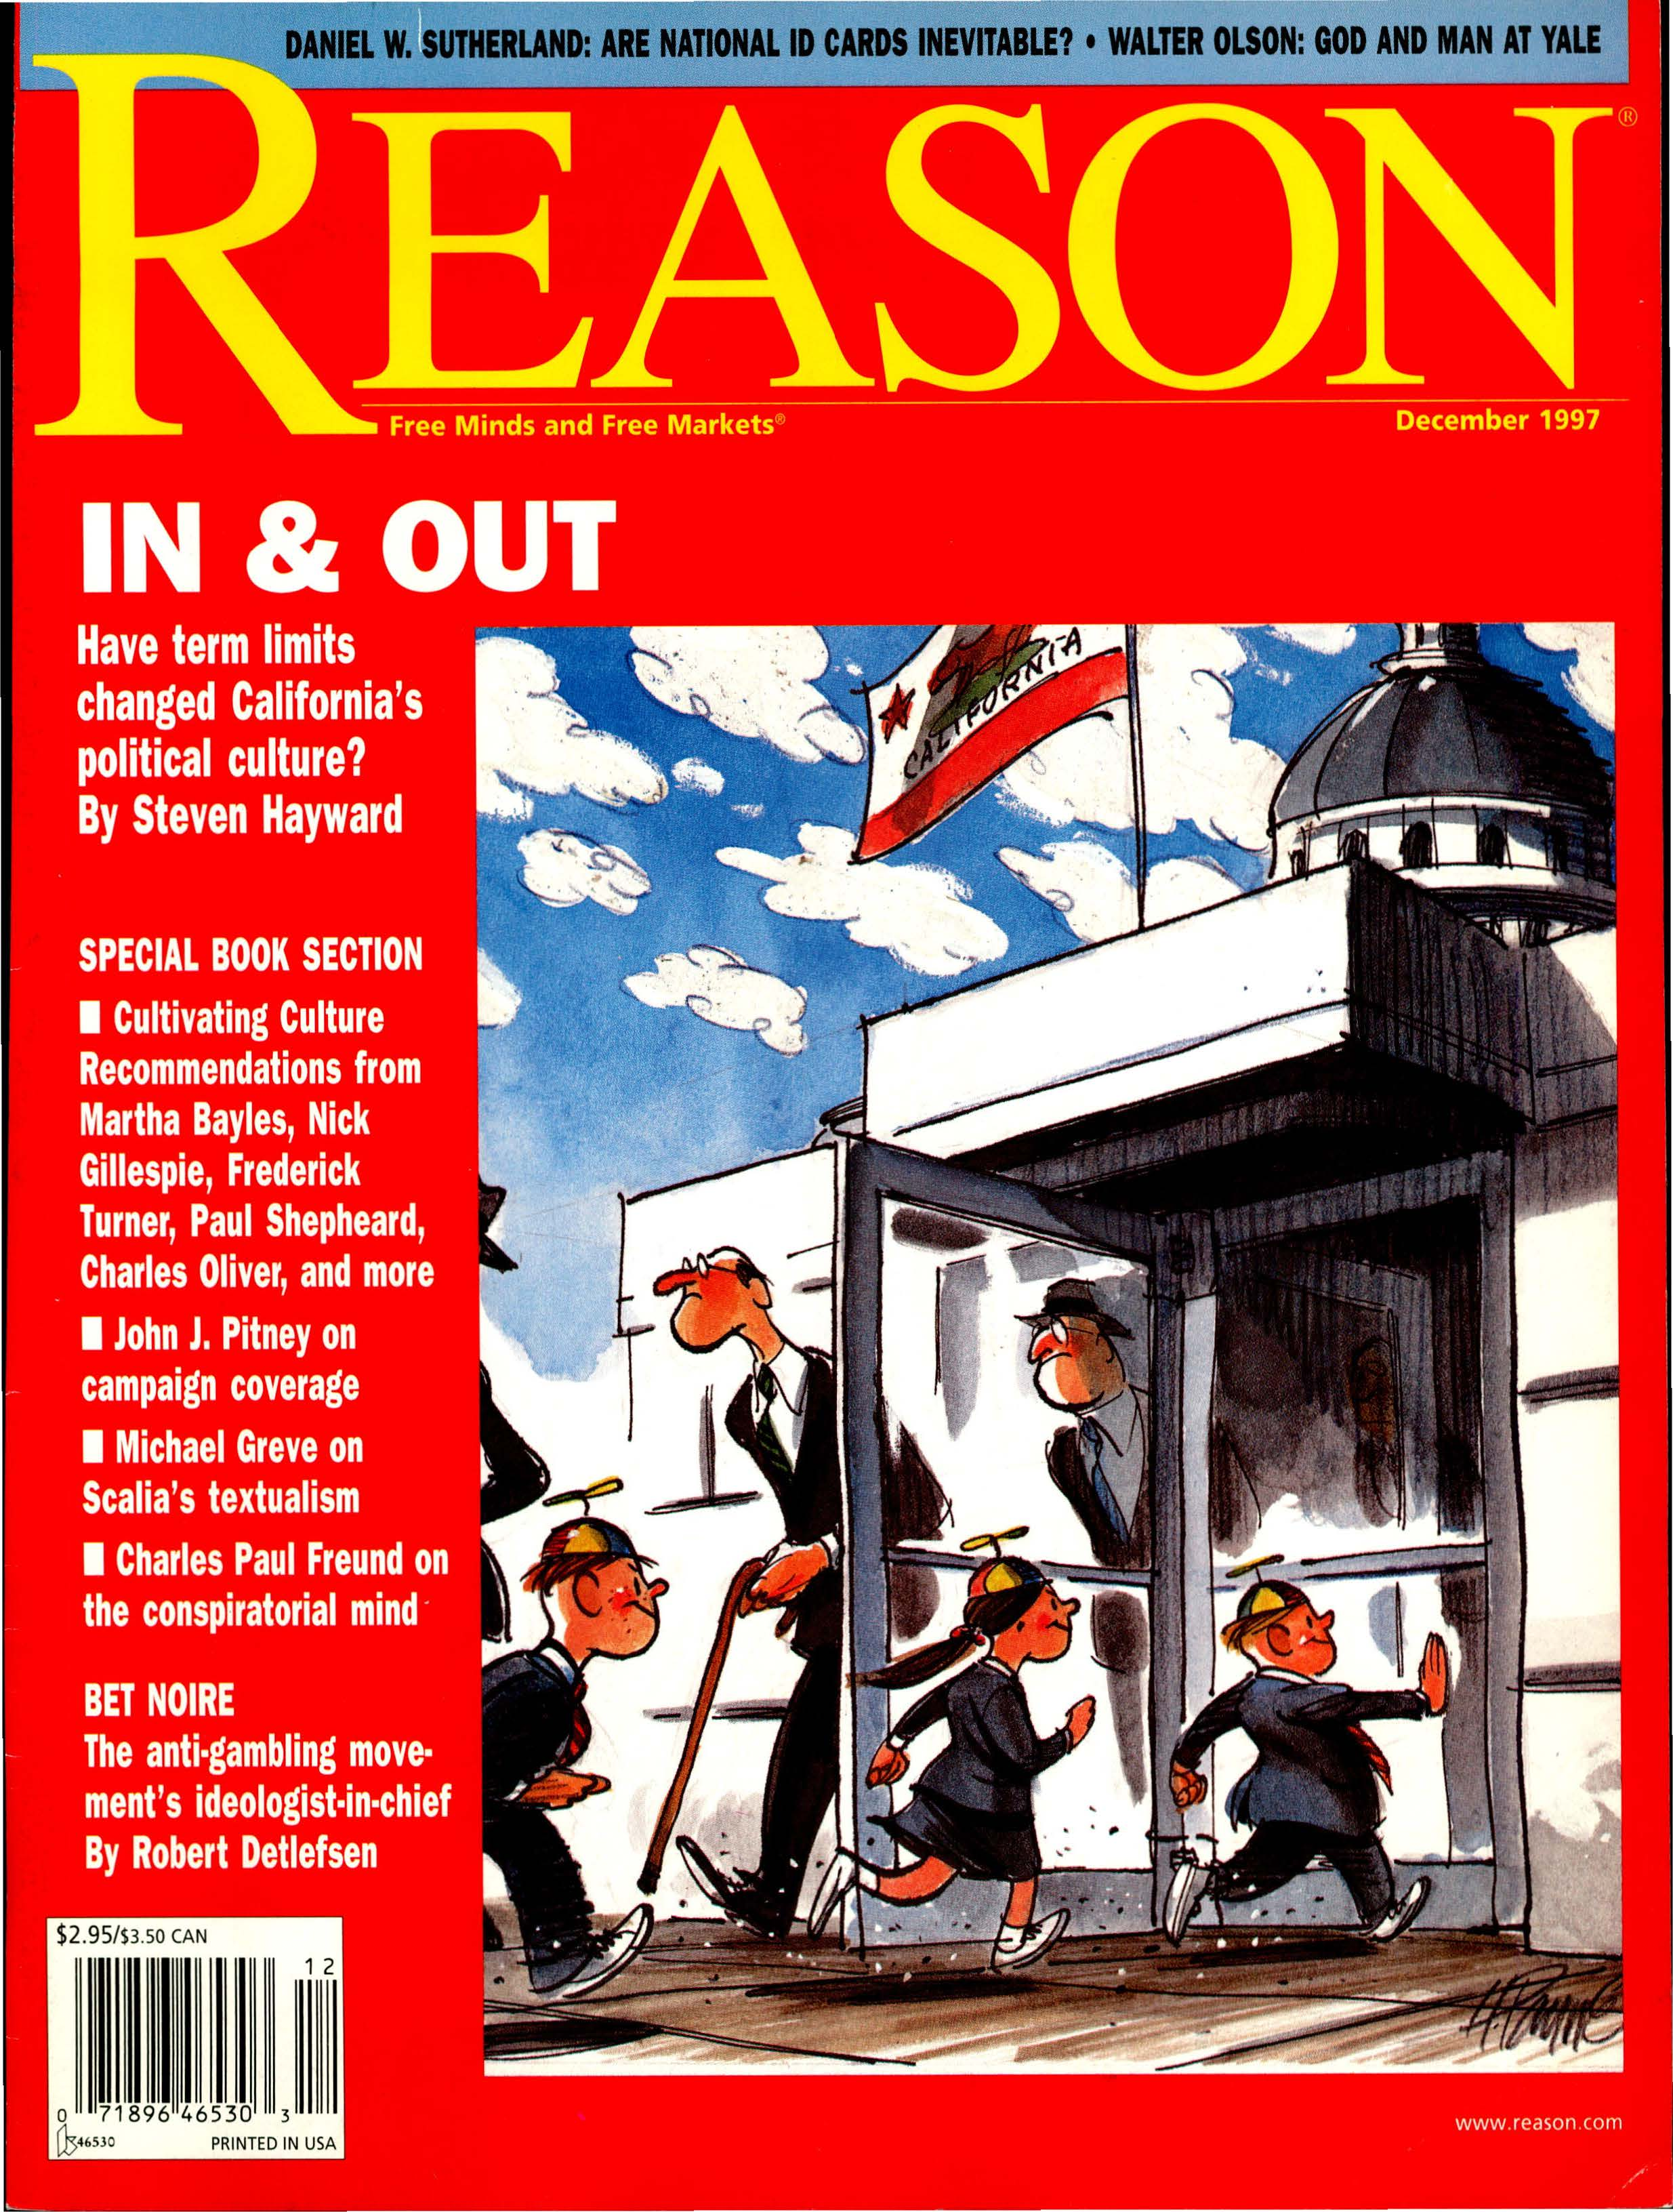 Reason Magazine, December 1997 cover image